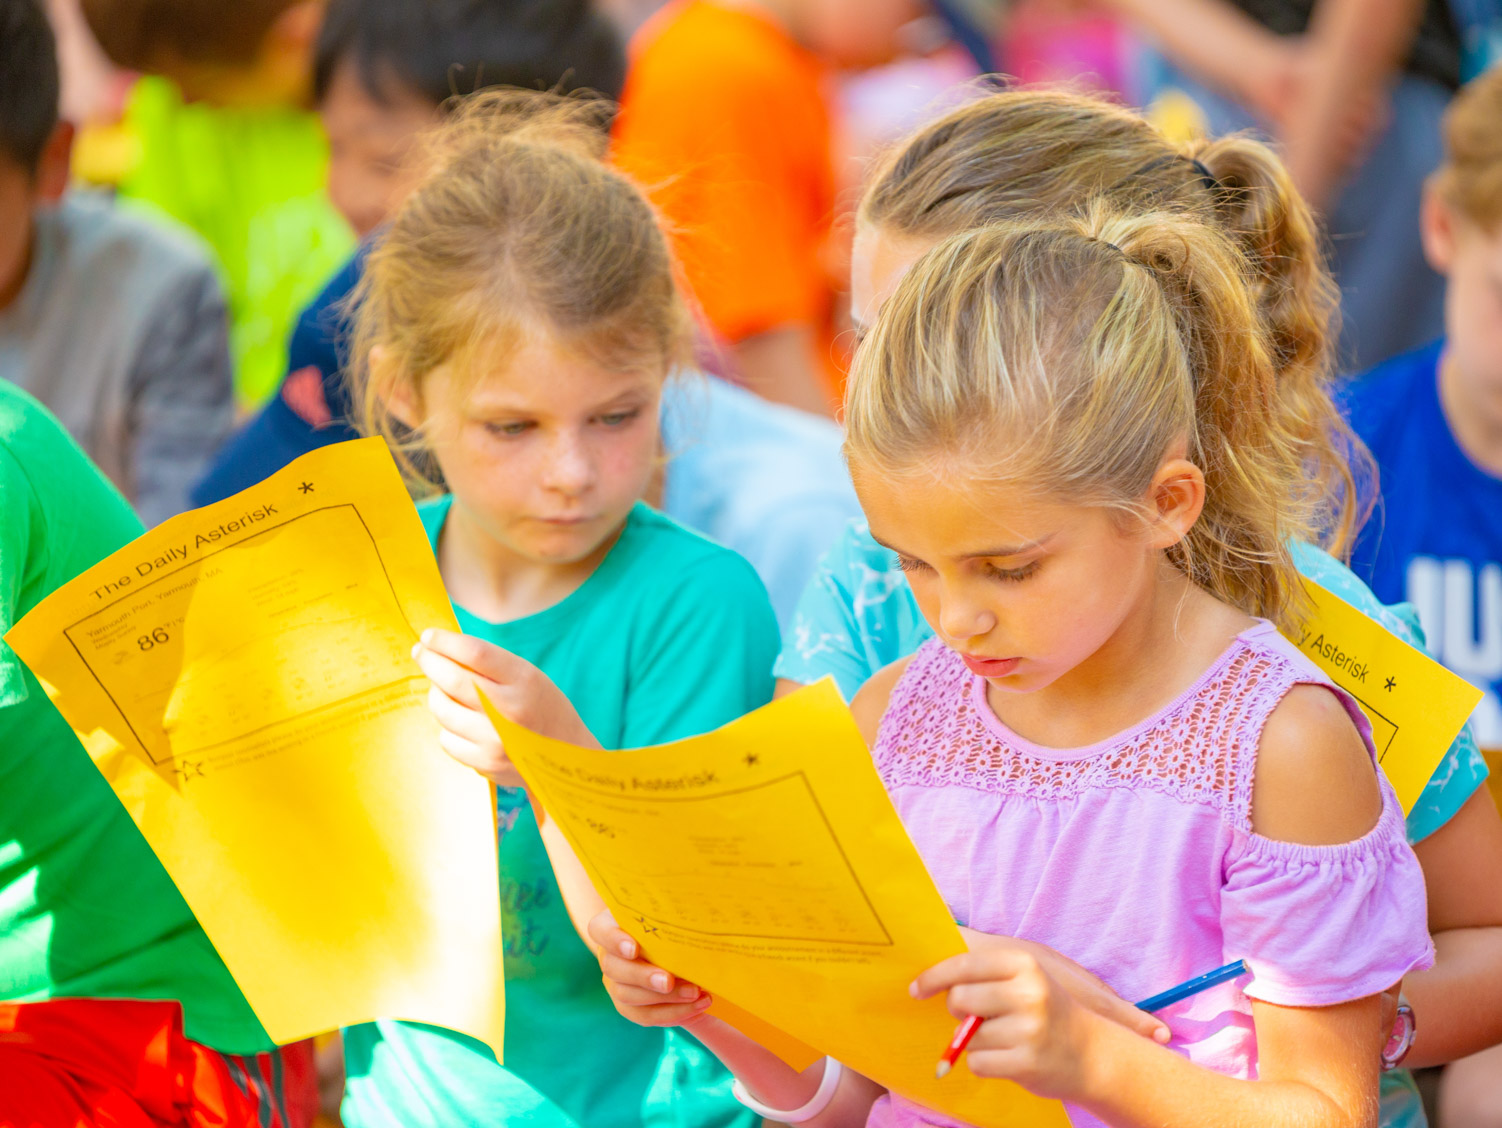 Kids filling out their daily choice activities forms